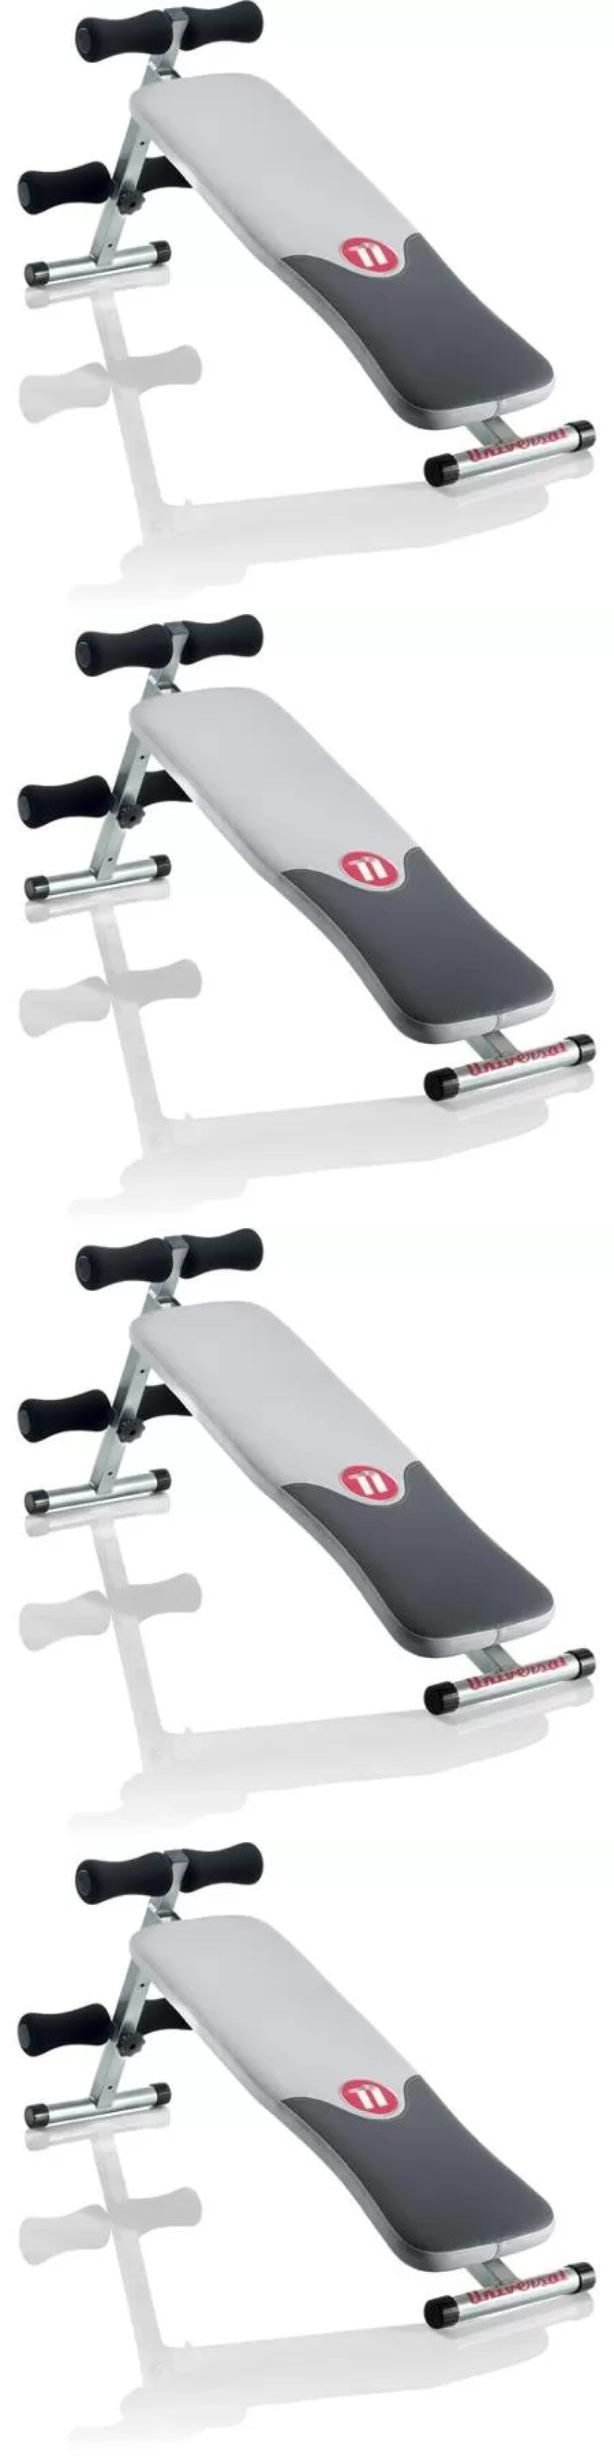 Abdominal Exercisers 15274: Fitness Exercise Crunch Gym Workout Abdominal Home Machine Abs Bench Equipment BUY IT NOW ONLY: $66.4